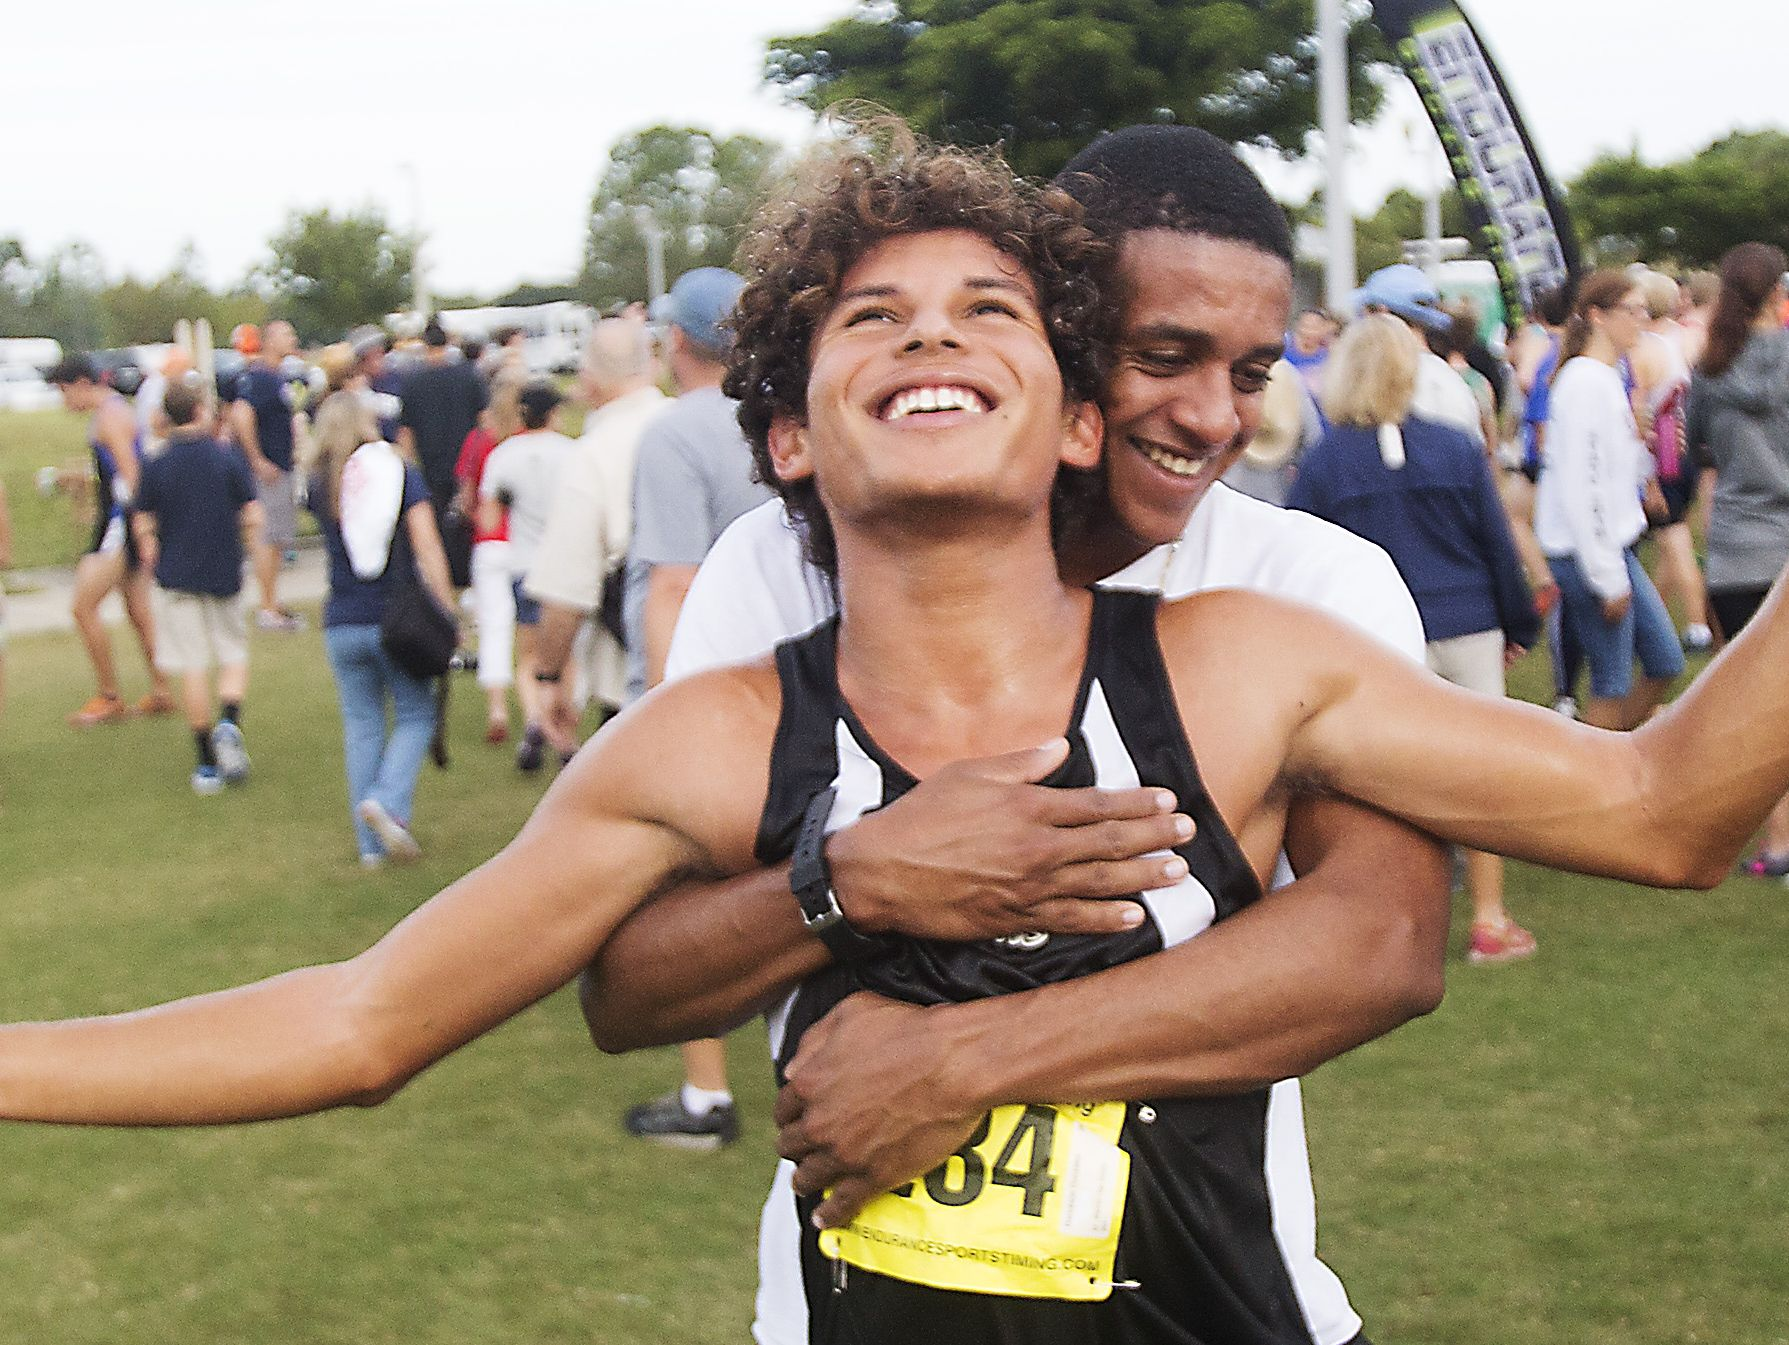 Mariner High School x-country runner Darickson Gonzalez reacts to making it to the FHSAA state championships after finishing 15th at FHSAA 3A District finals at Estero Community Park on Friday.